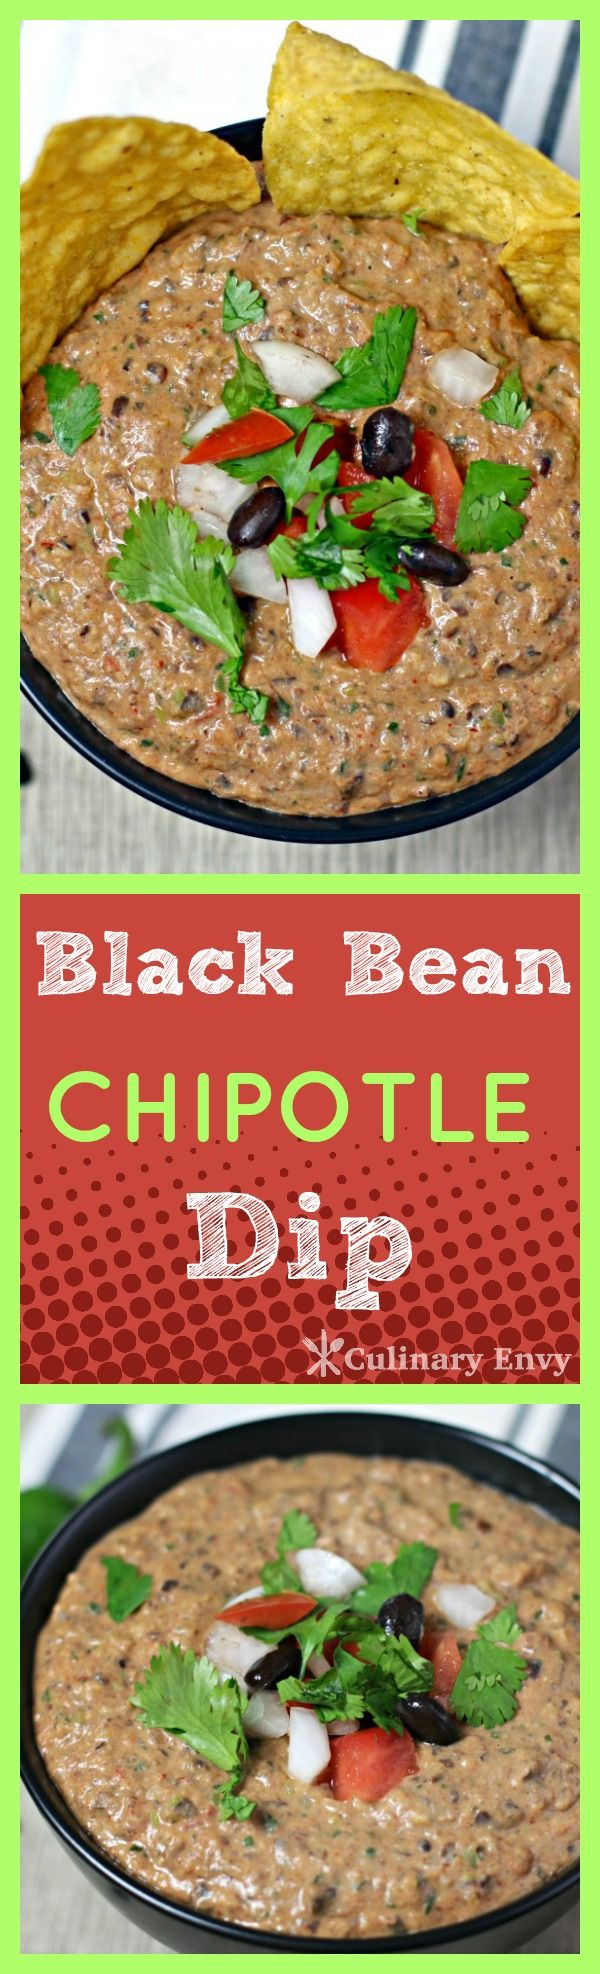 Black Bean Chipotle Dip is a FLAVOR explosion in your mouth!  Tangy, savory, smoky and a tiny bit sweet, this HOT dip disappears quickly!  Click to read more or pin and save for later!